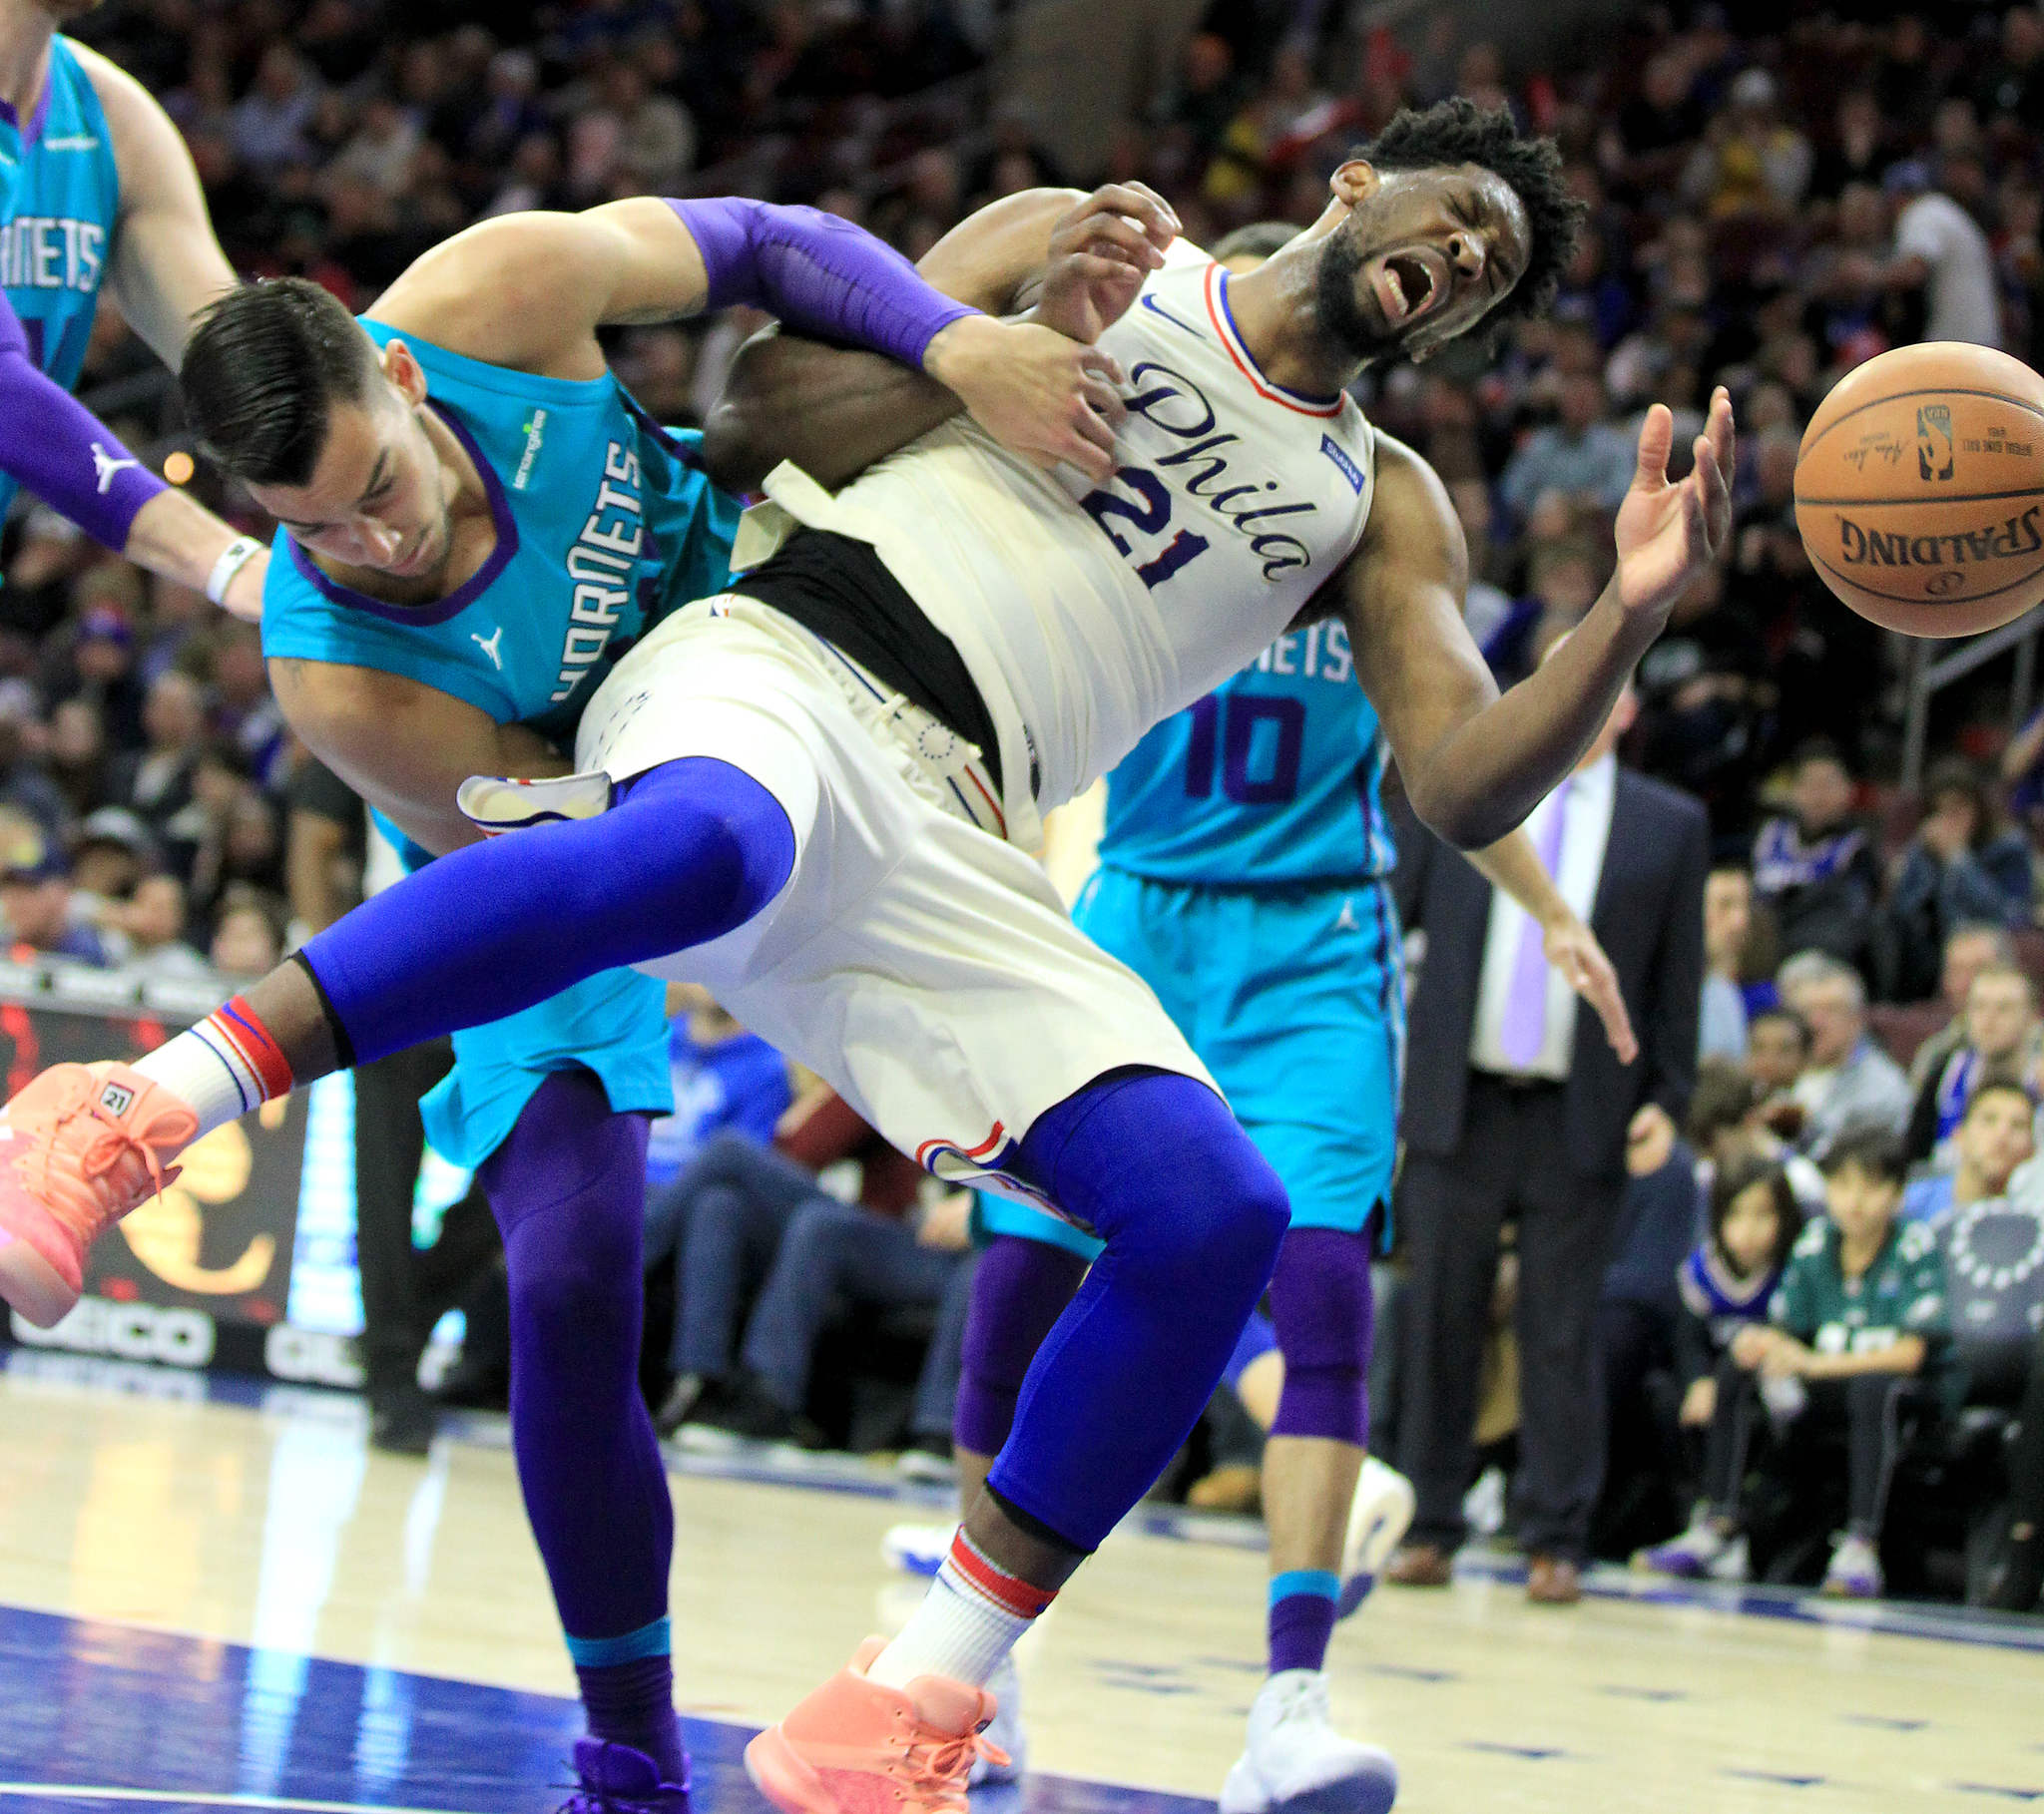 Joel Embiid, right, of the Sixers gets fouled hard by Willy Hernangomez of the Hornets during the 3rd quarter at the Wells Fargo Center on March 2, 2018.